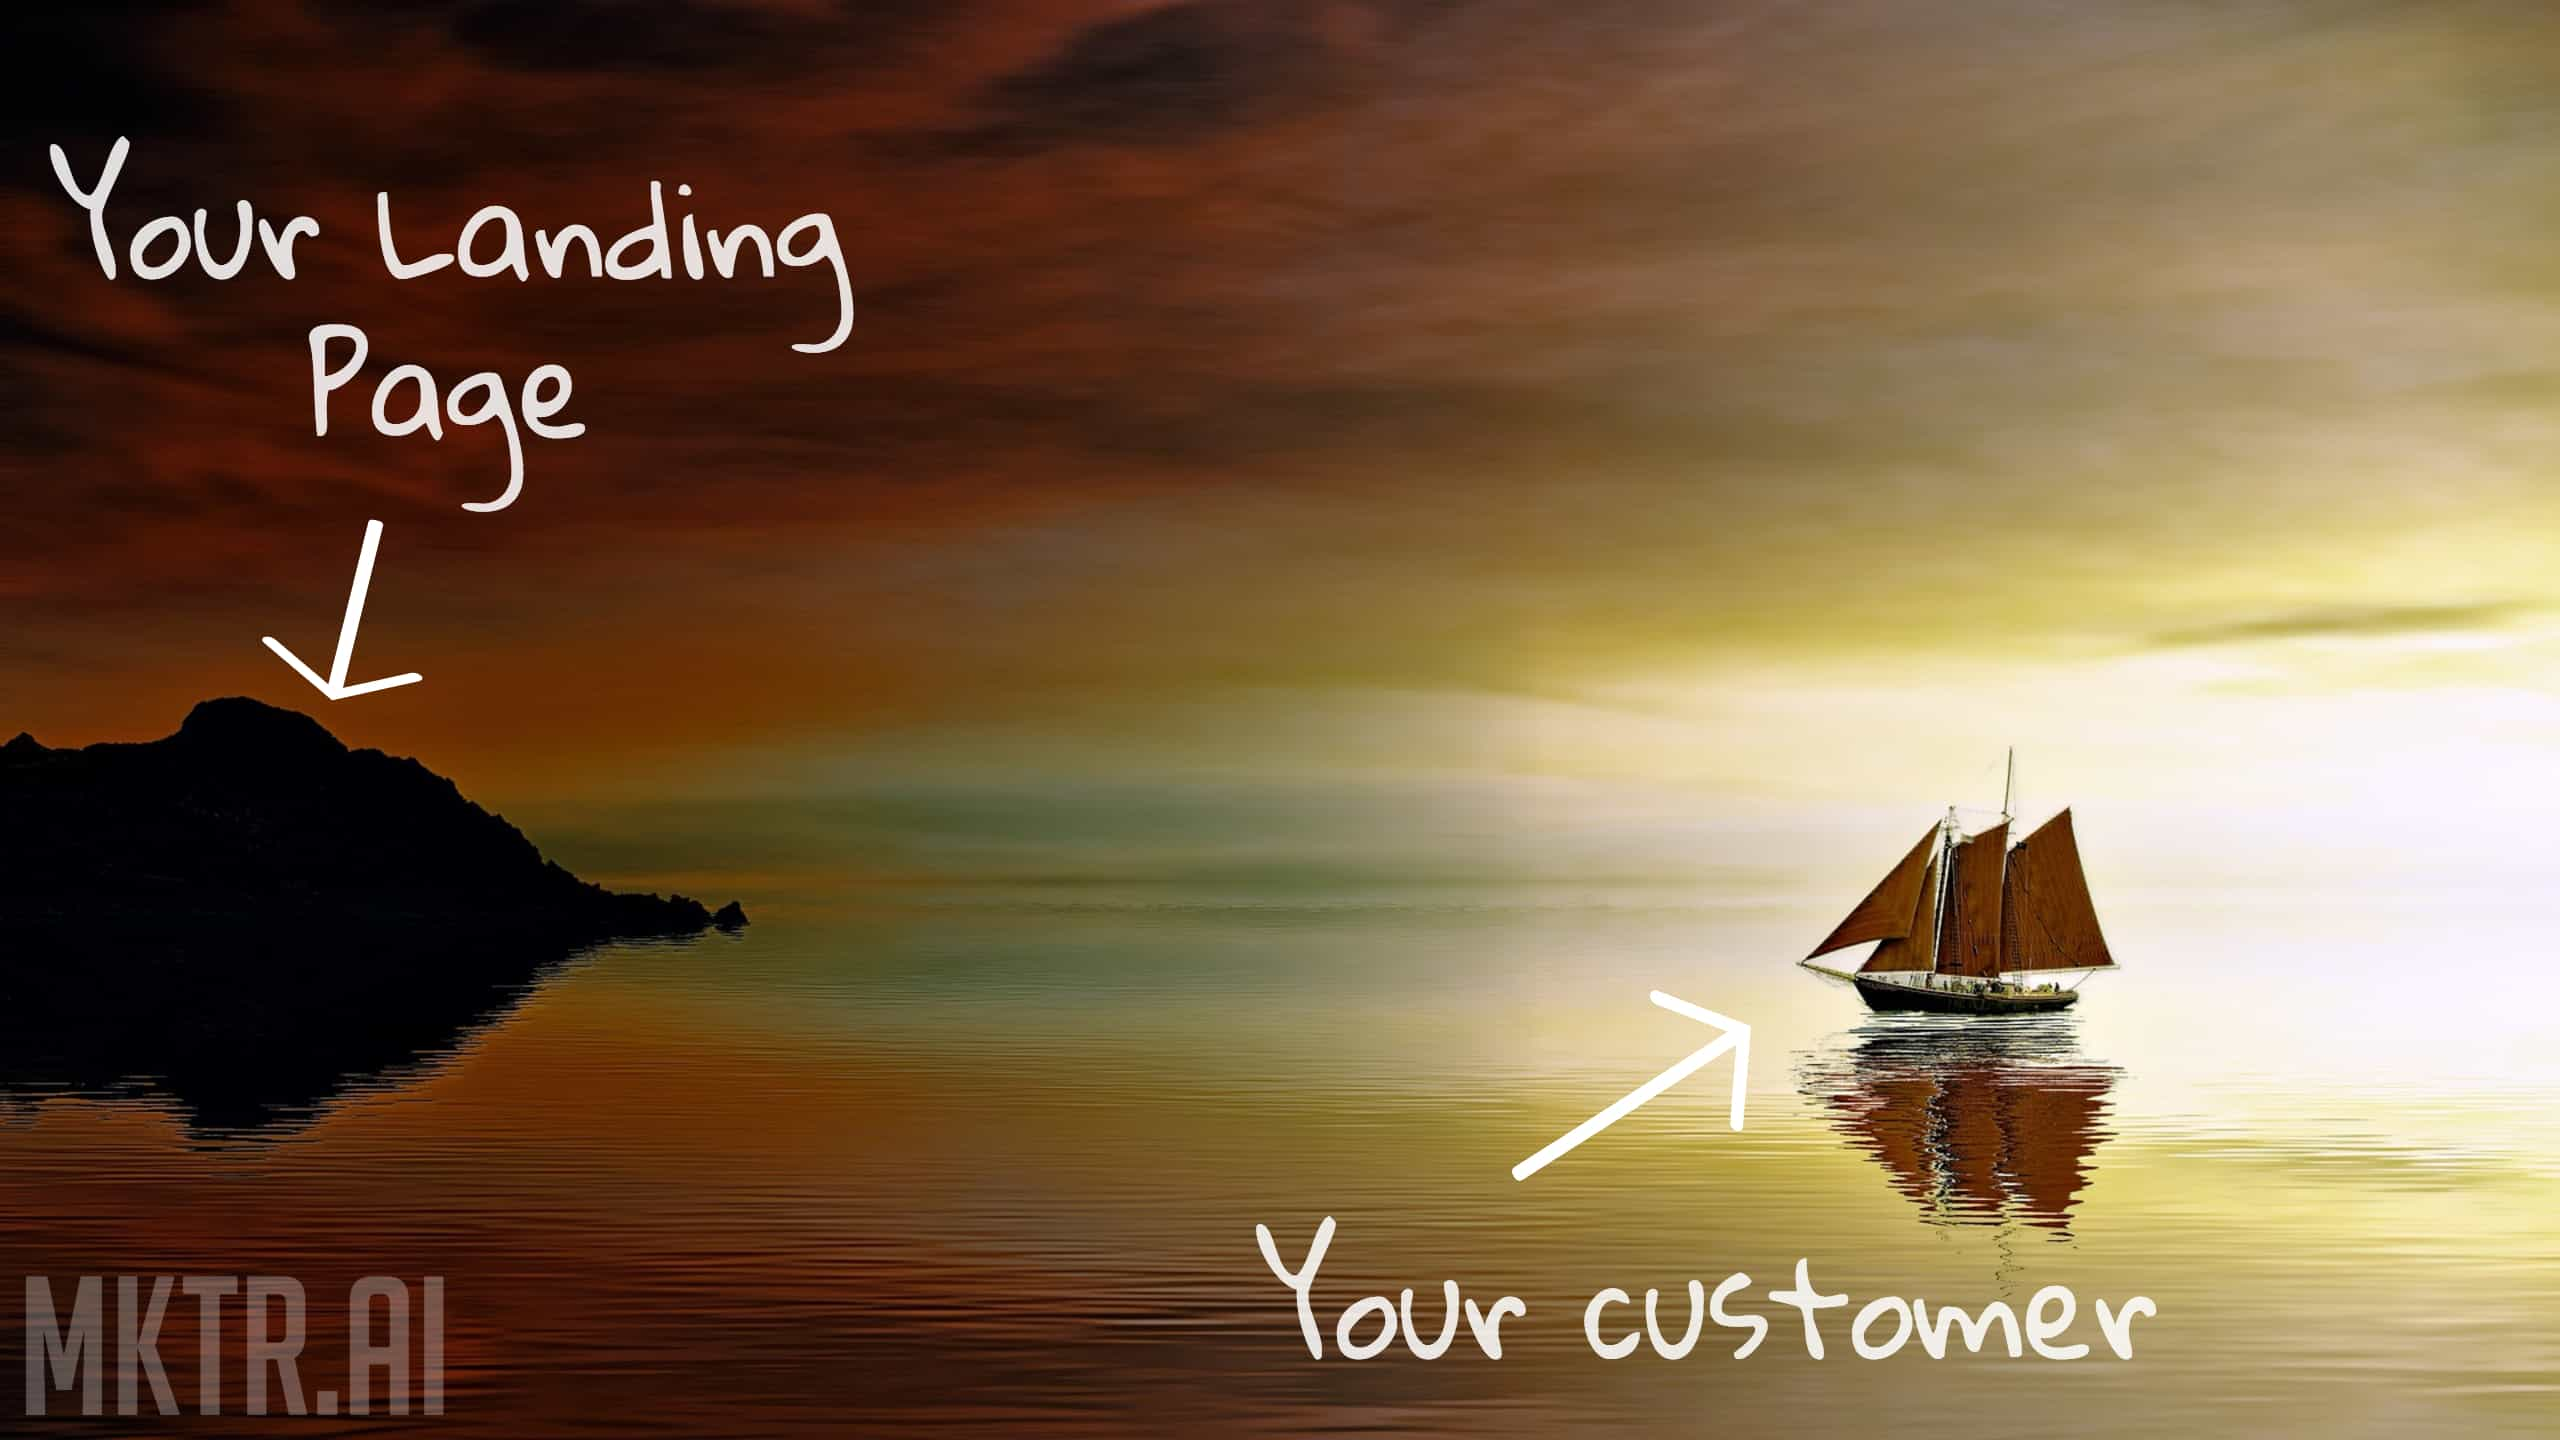 Your landing page to a customer is like a small island to a passing boat -- you need to catch your customer's attention